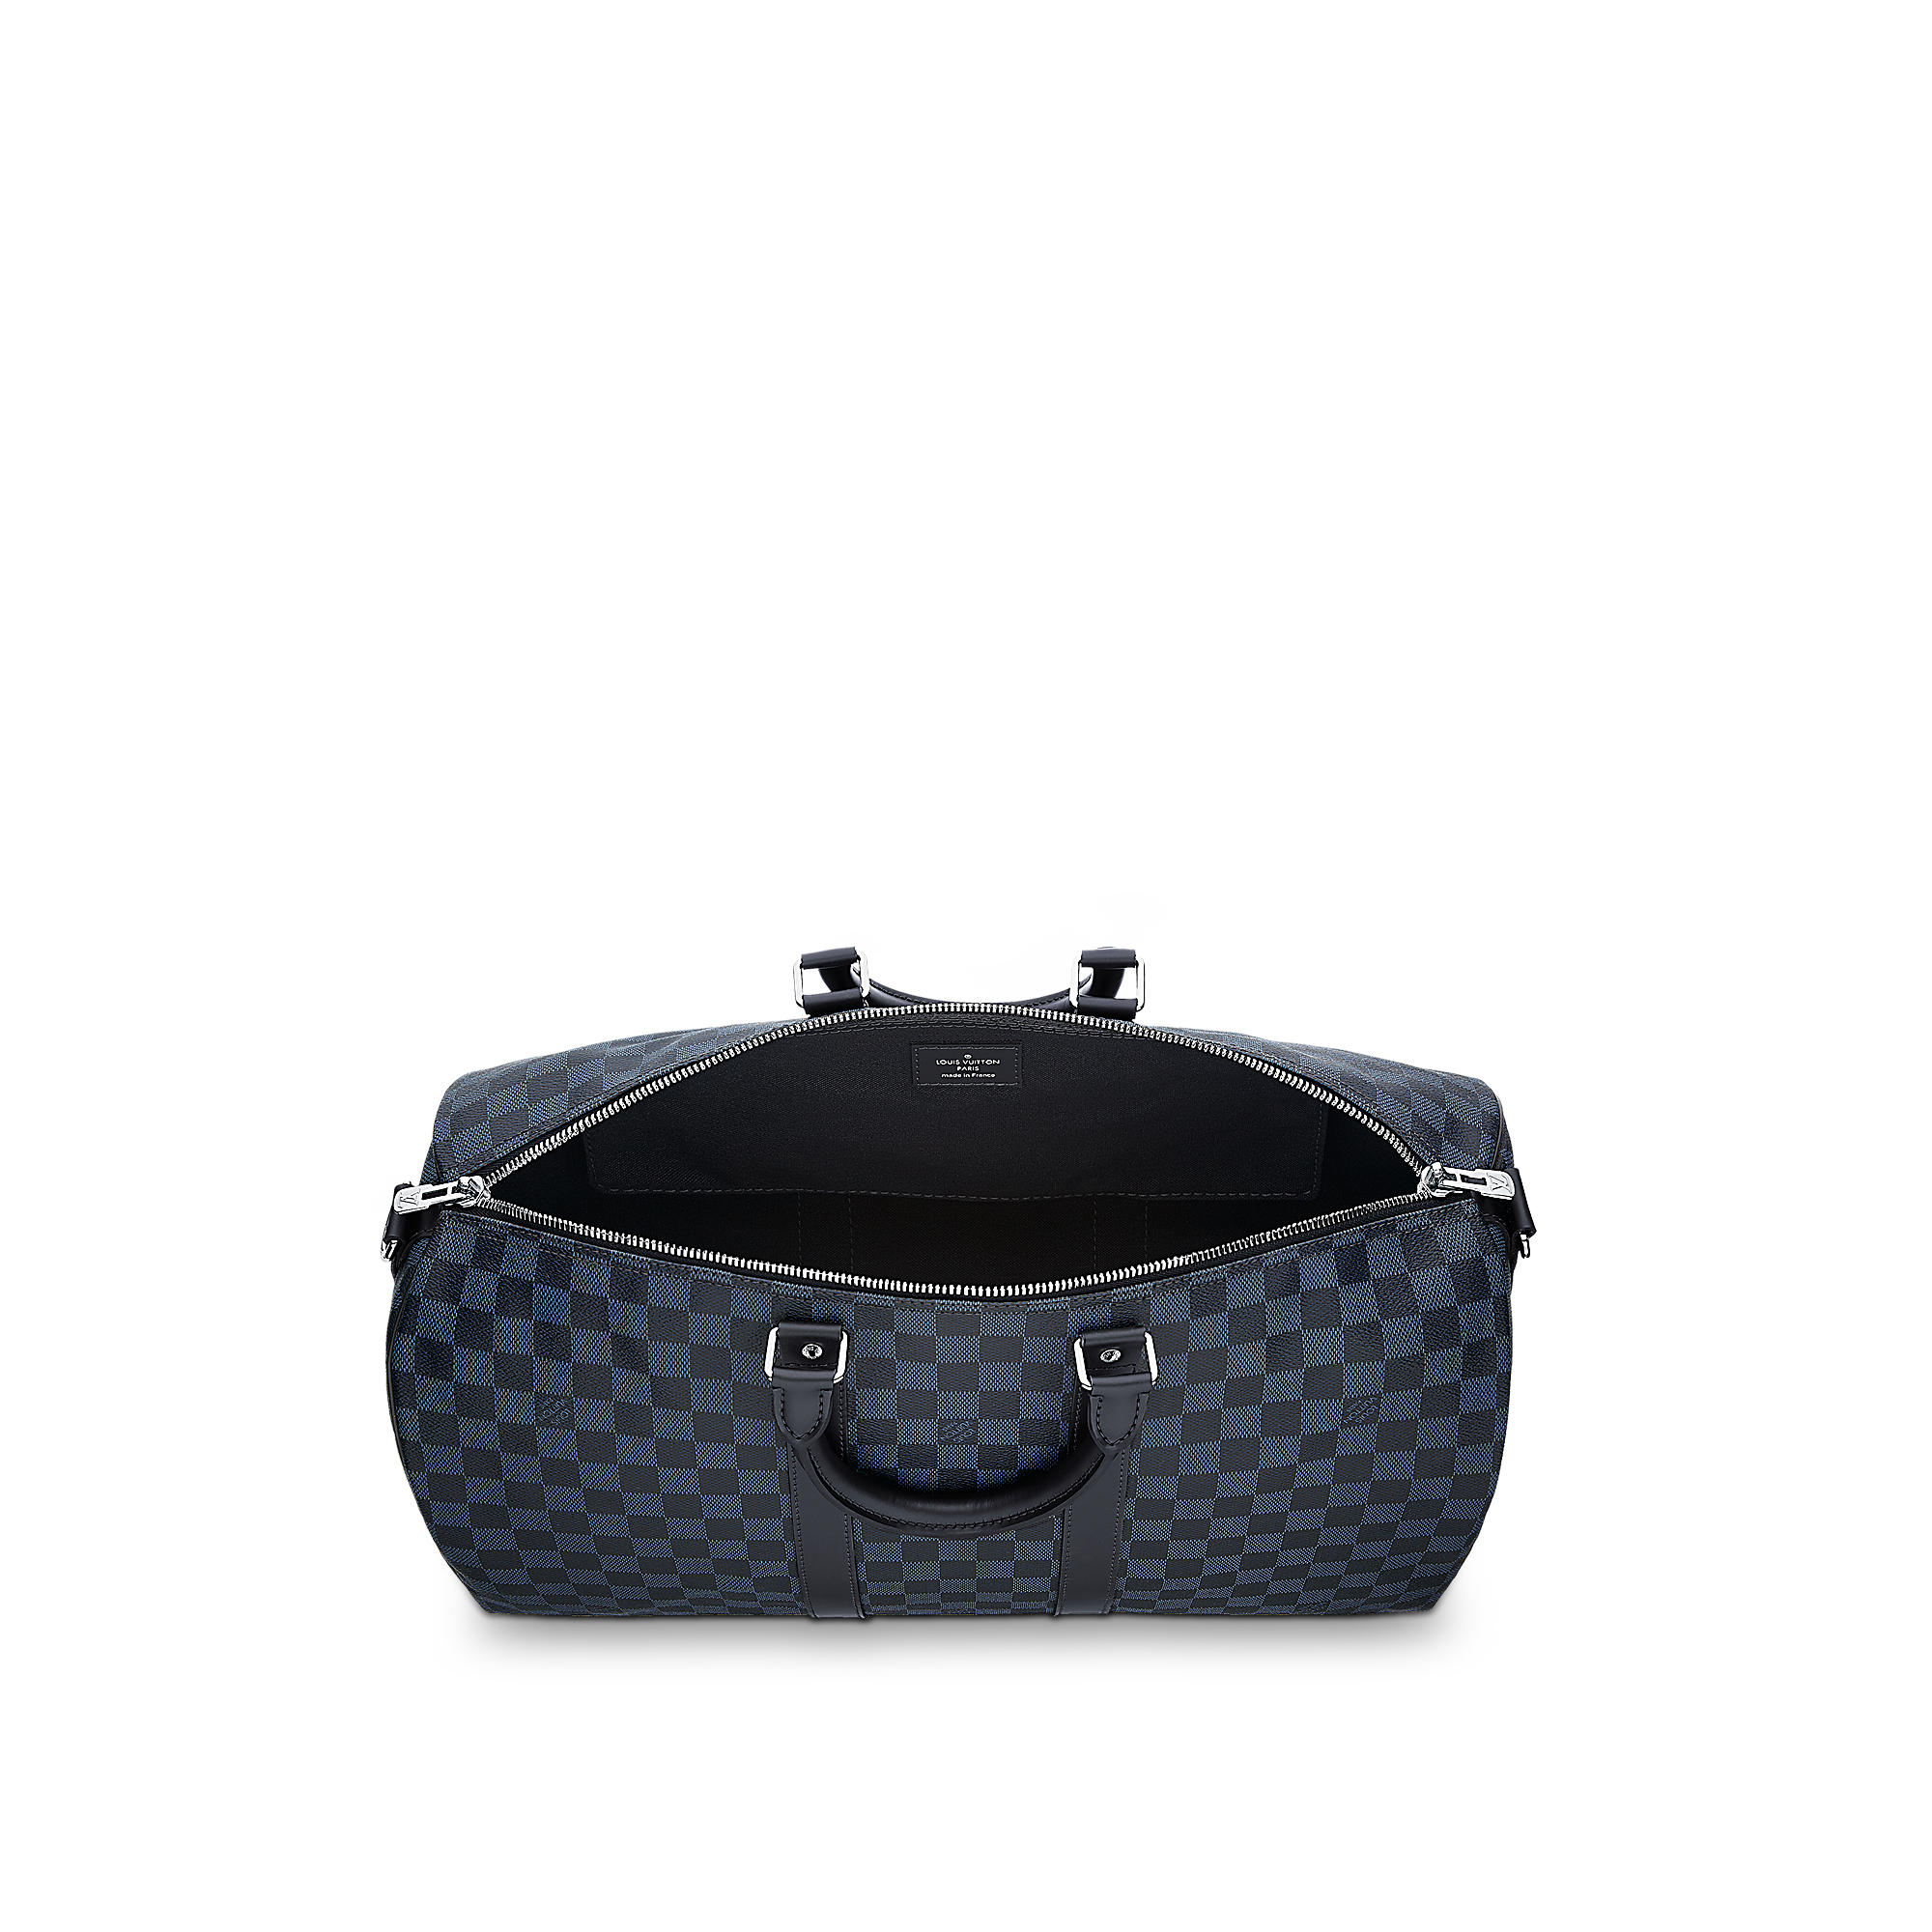 Louis Vuitton Uomo Keepall Bandoulière 45